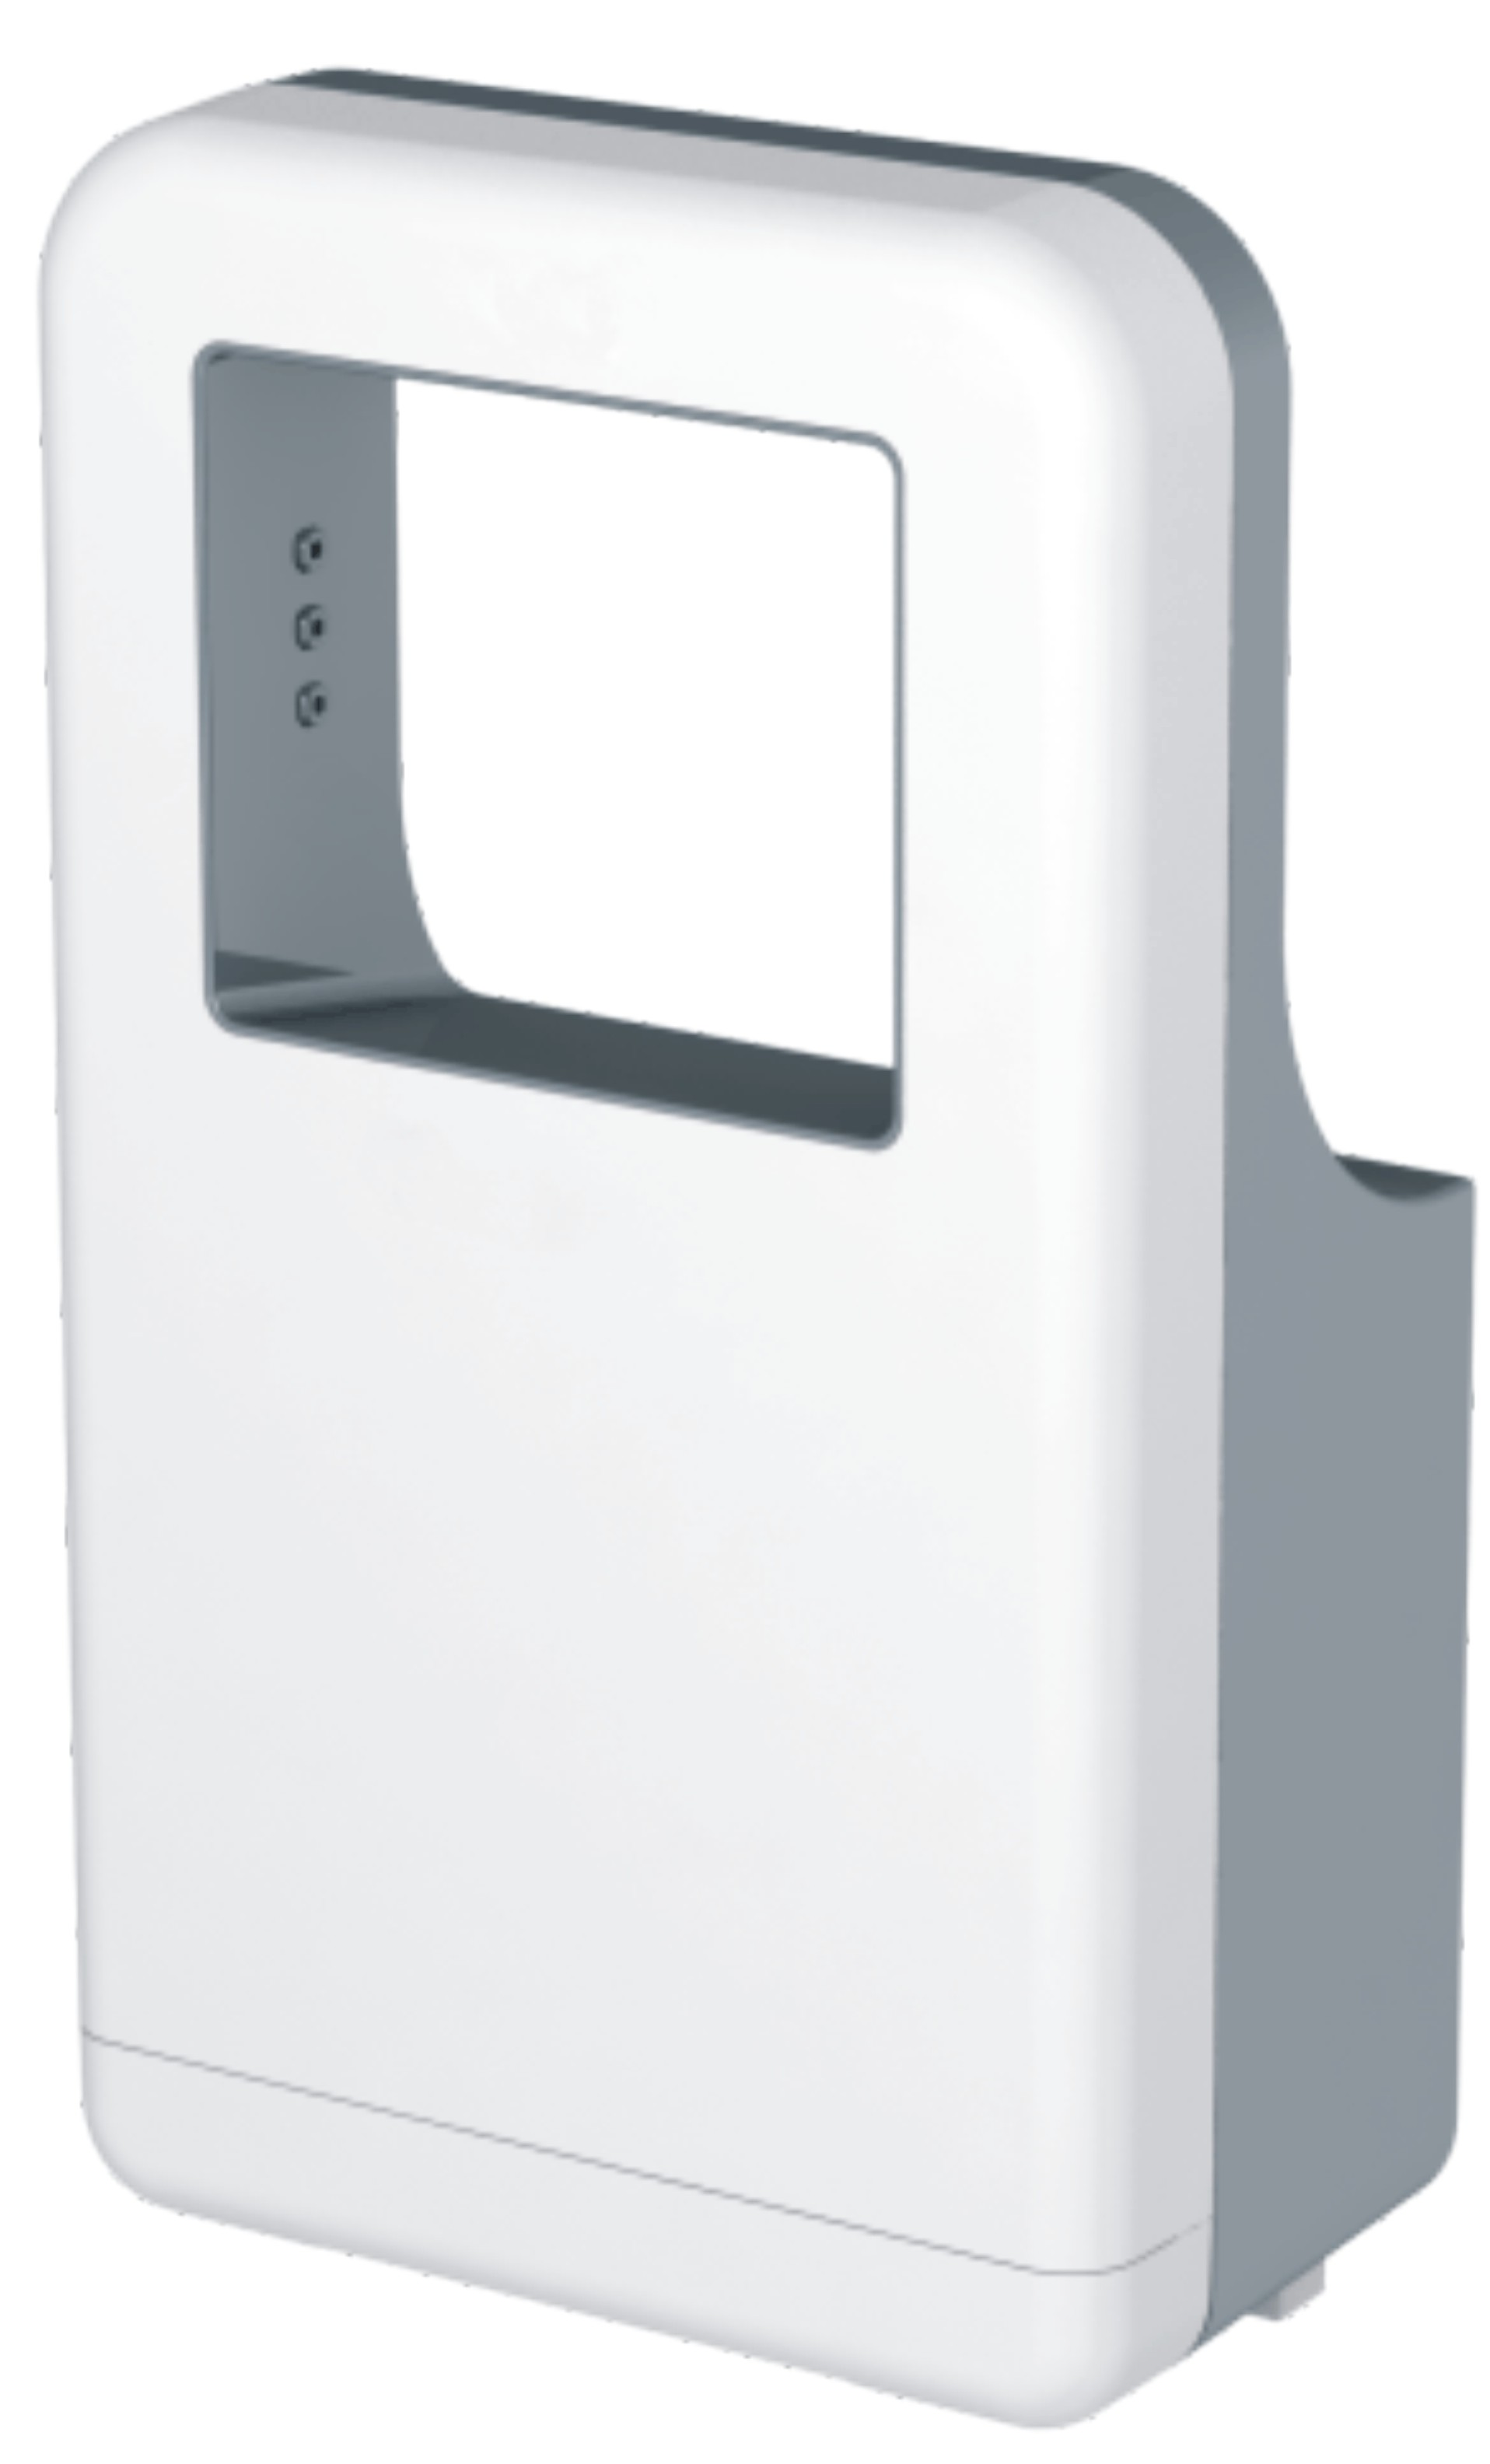 EcoMo High Ergonomic Speed Hand Dryer